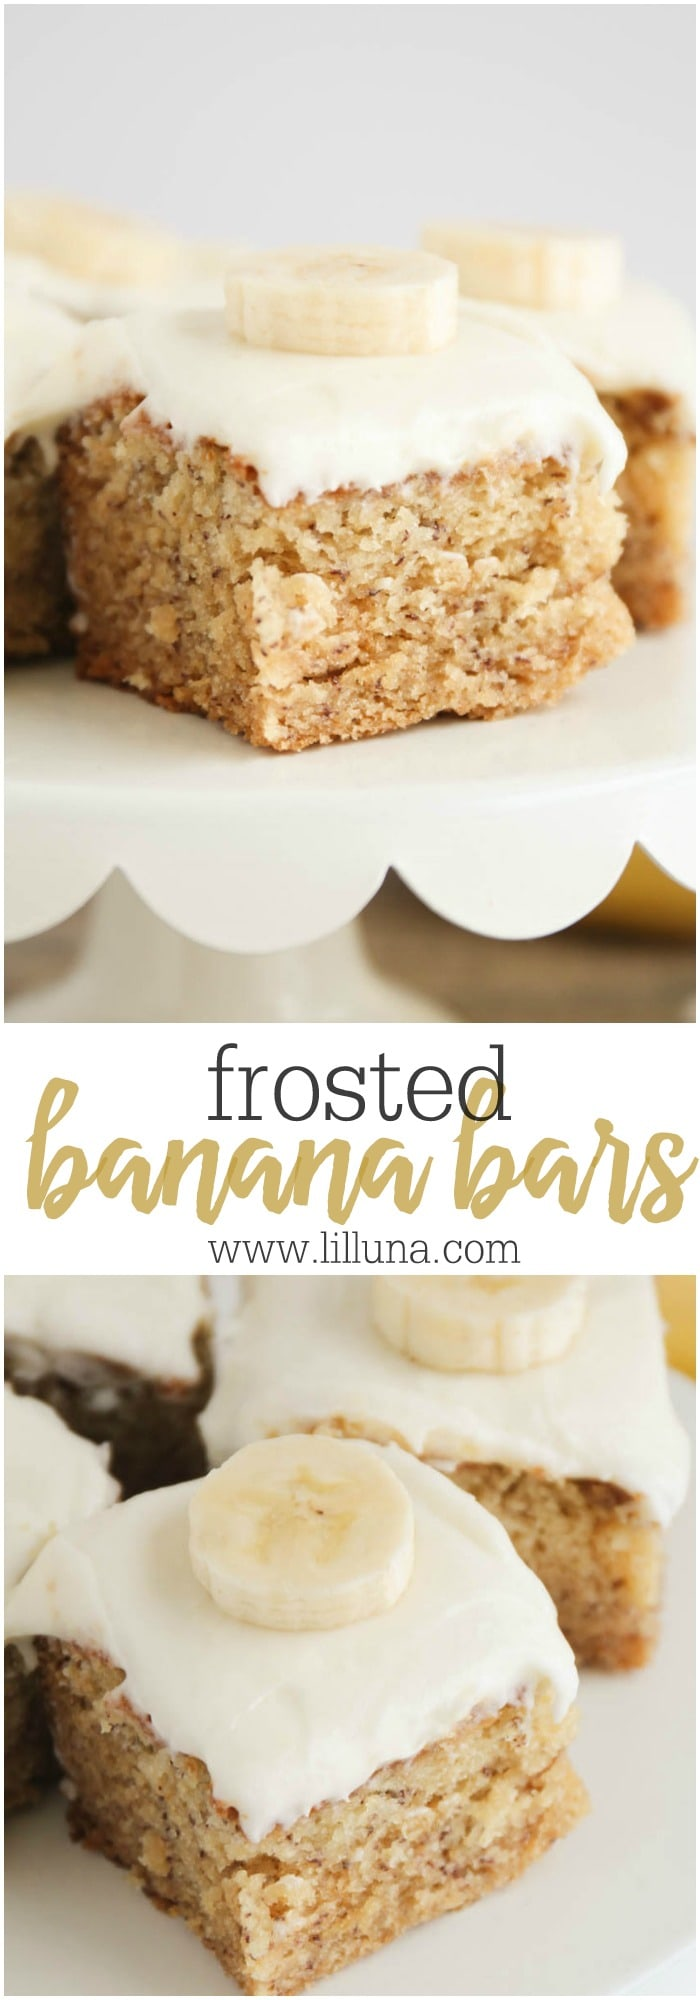 Collage of frosted banana bars with cream cheese frosting